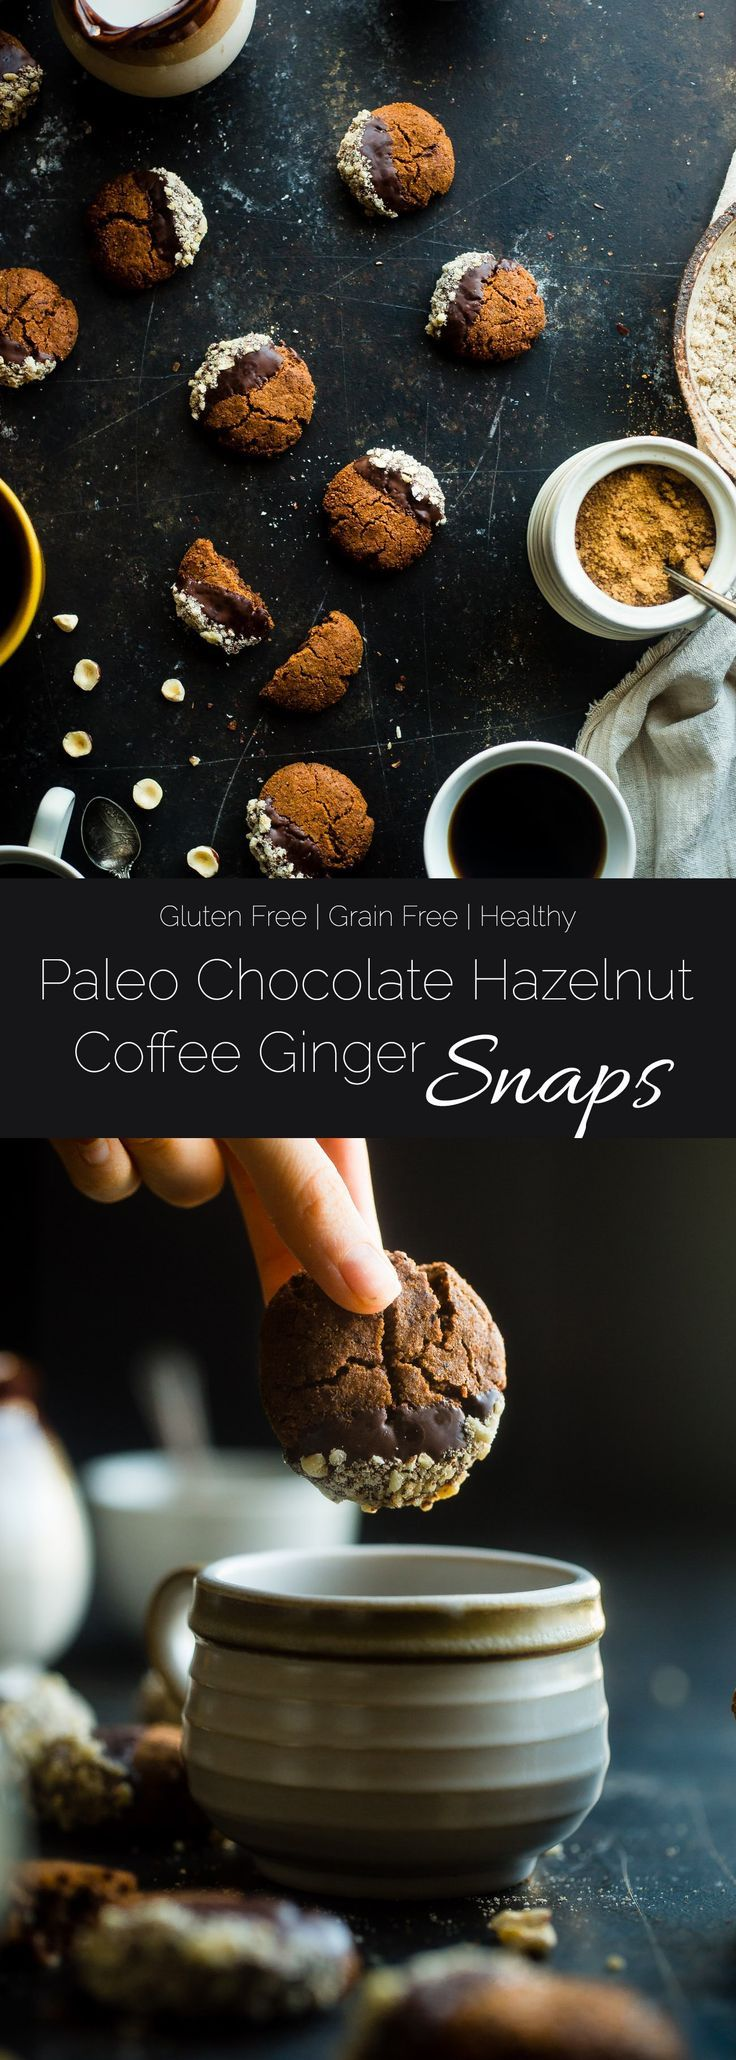 Paleo Chocolate Hazelnut Coffee Ginger Snaps - This easy, sweet and spicy paleo chocolate hazelnut healthy ginger snap recipe has notes of rich coffee! They're the perfect healthy, gluten free cookie for the Holidays! | Foodfaithfitness.com | @FoodFaithFit